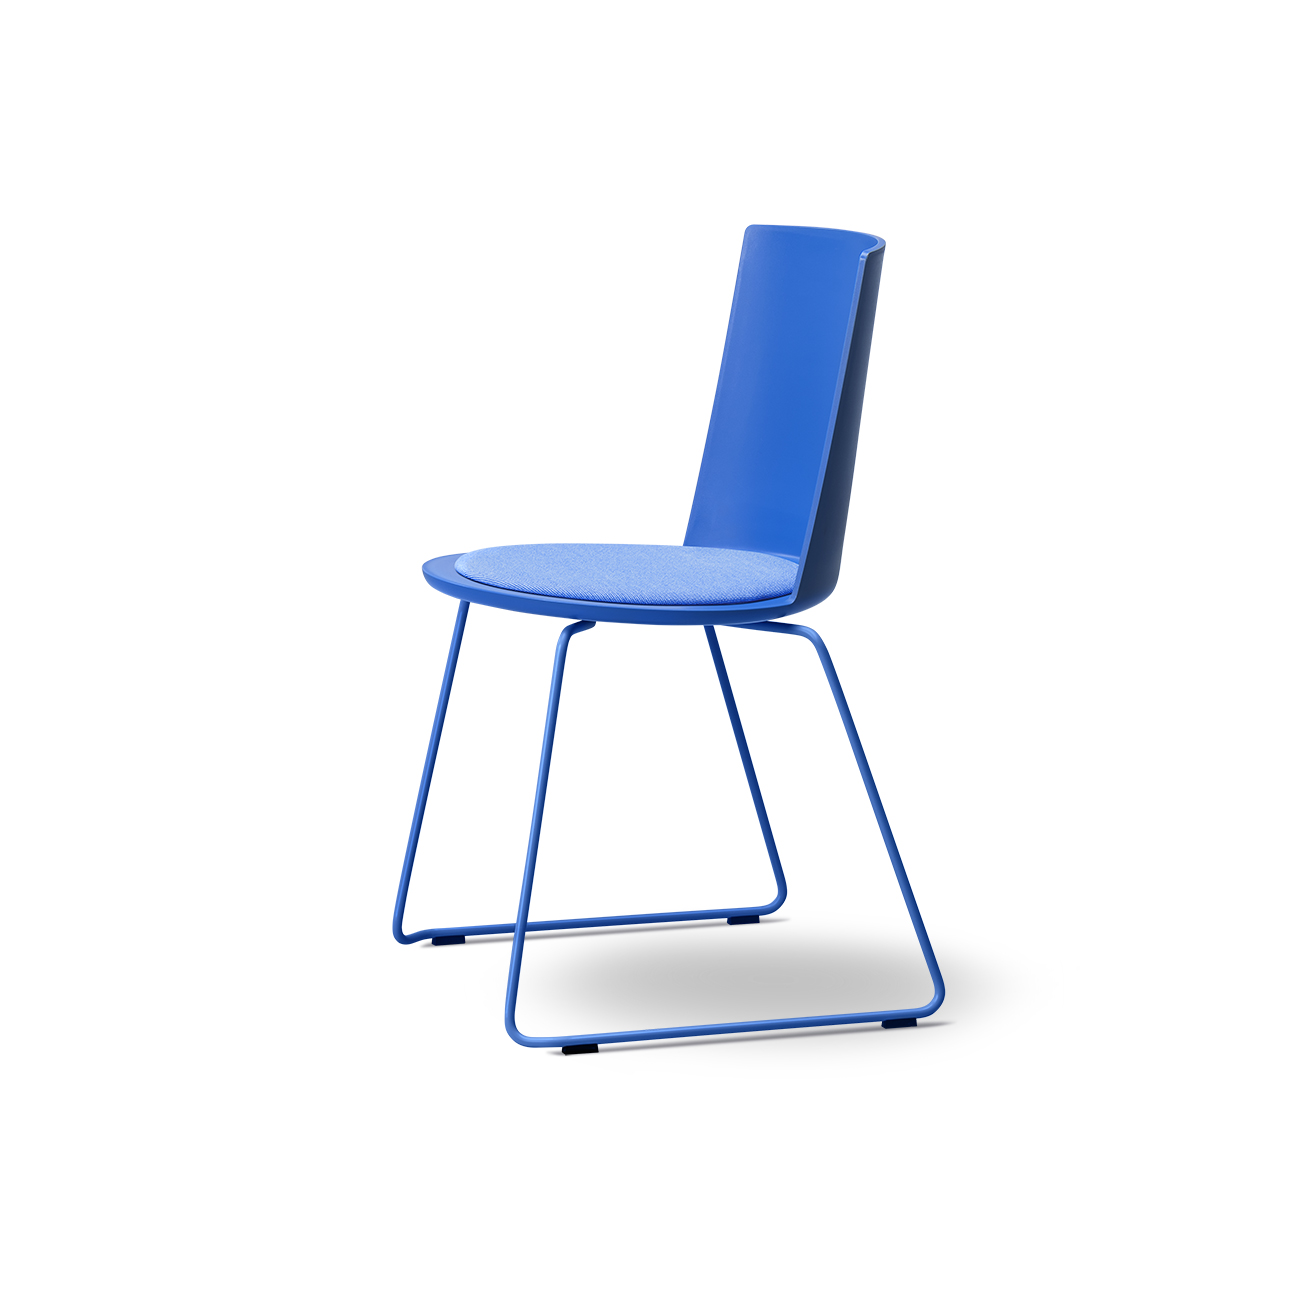 Acme Sled Base Chair Acme Collection By Fredericia Furniture Design Geckeler Michels